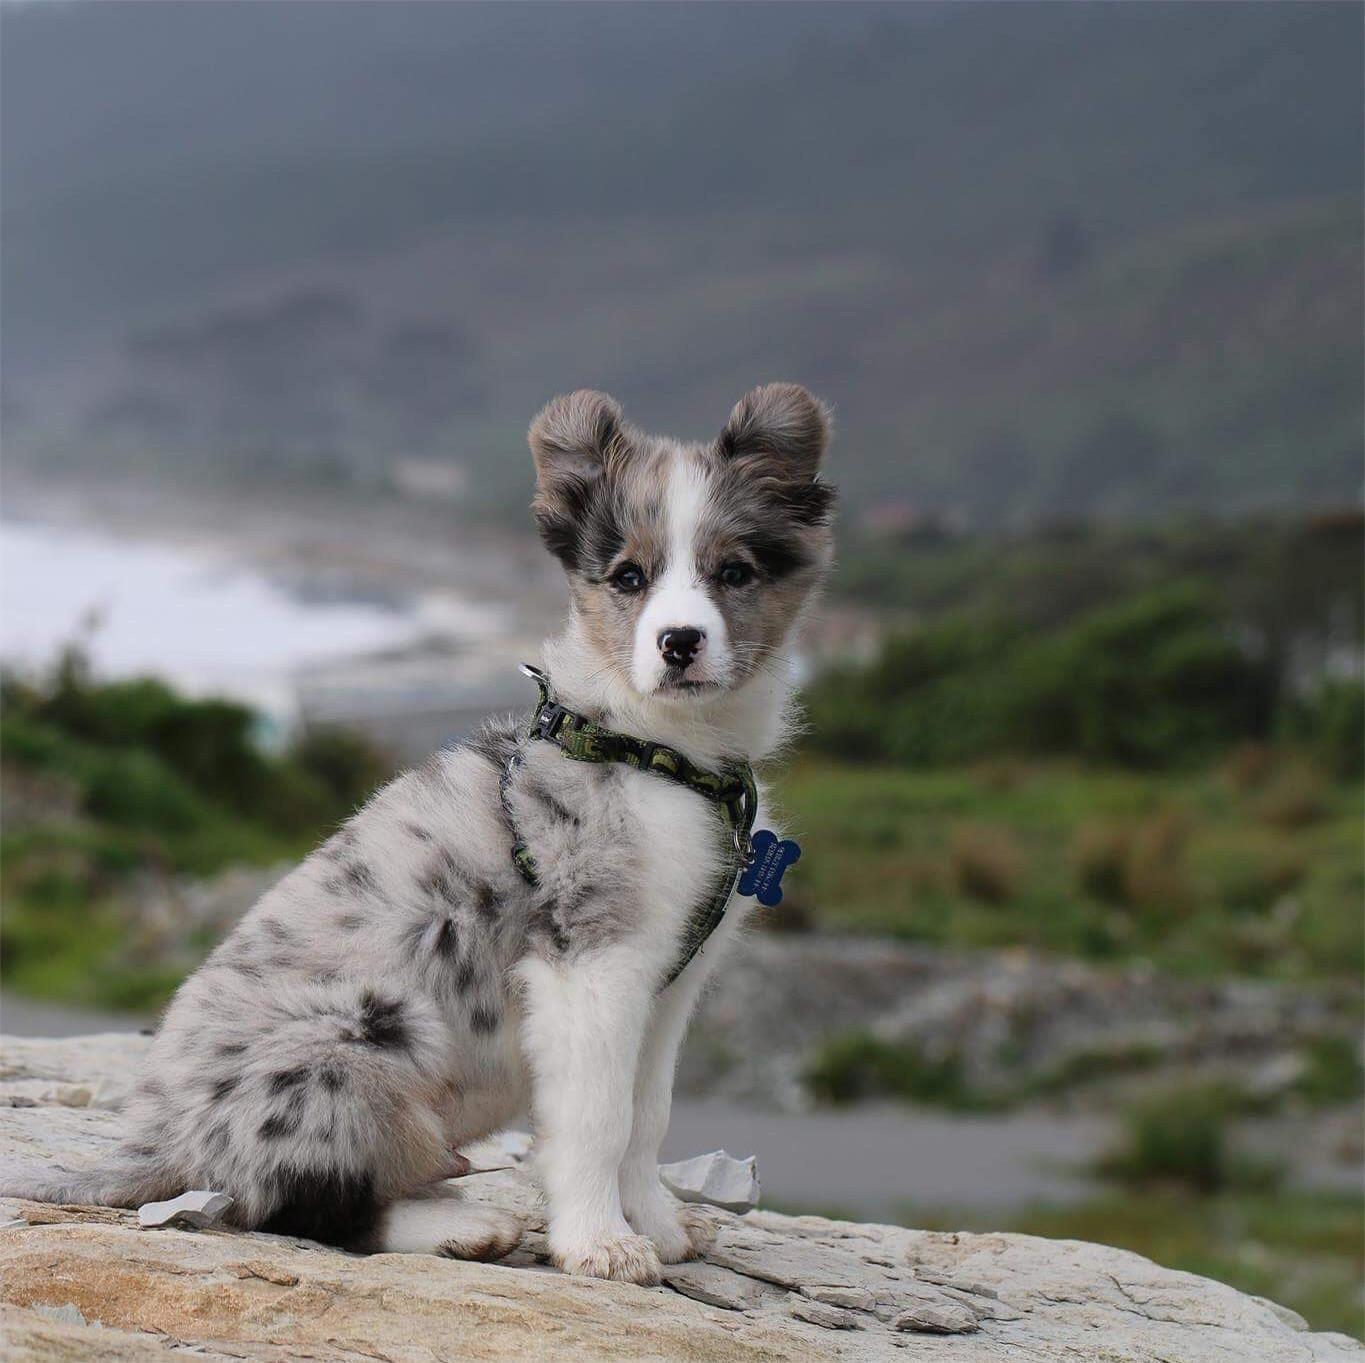 Here It Is Reddit The Best Picture I Ve Taken Of My Handsome Pup Or Anything Else Australian Shepherd Australian Shepherd Dogs Australian Shepherd Puppies